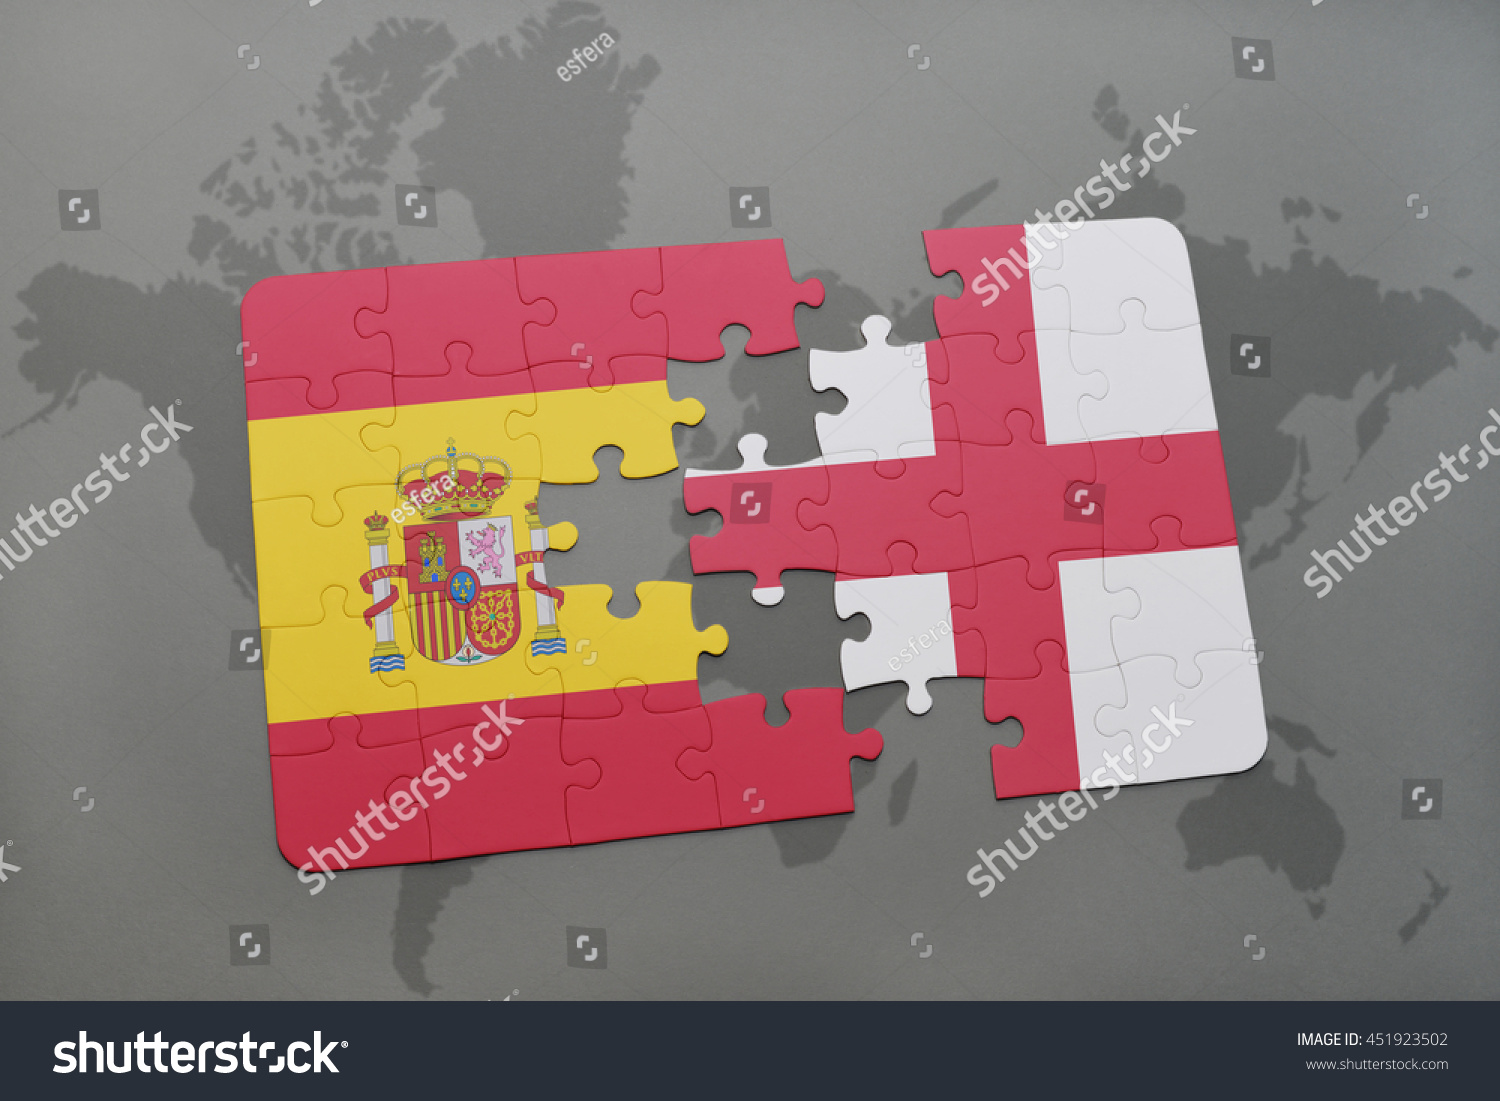 Puzzle national flag spain england on stock illustration 451923502 puzzle with the national flag of spain and england on a world map background 3d gumiabroncs Gallery